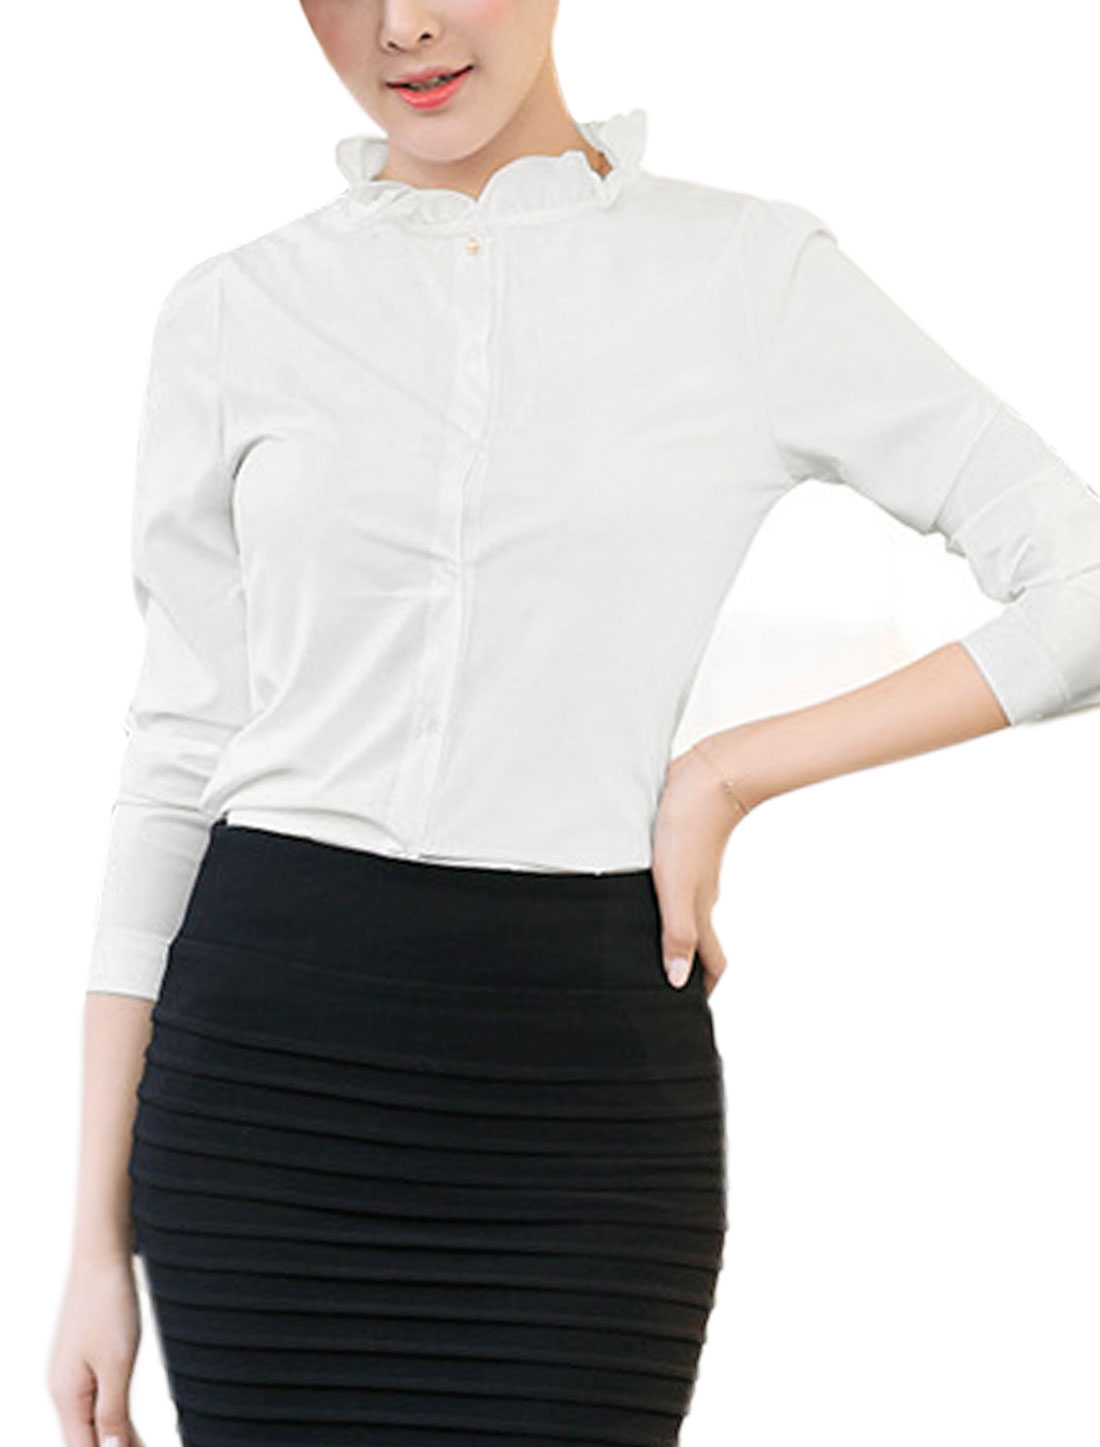 Ladies Ruffled Collar Slim Fit Buttoned Shirt White M